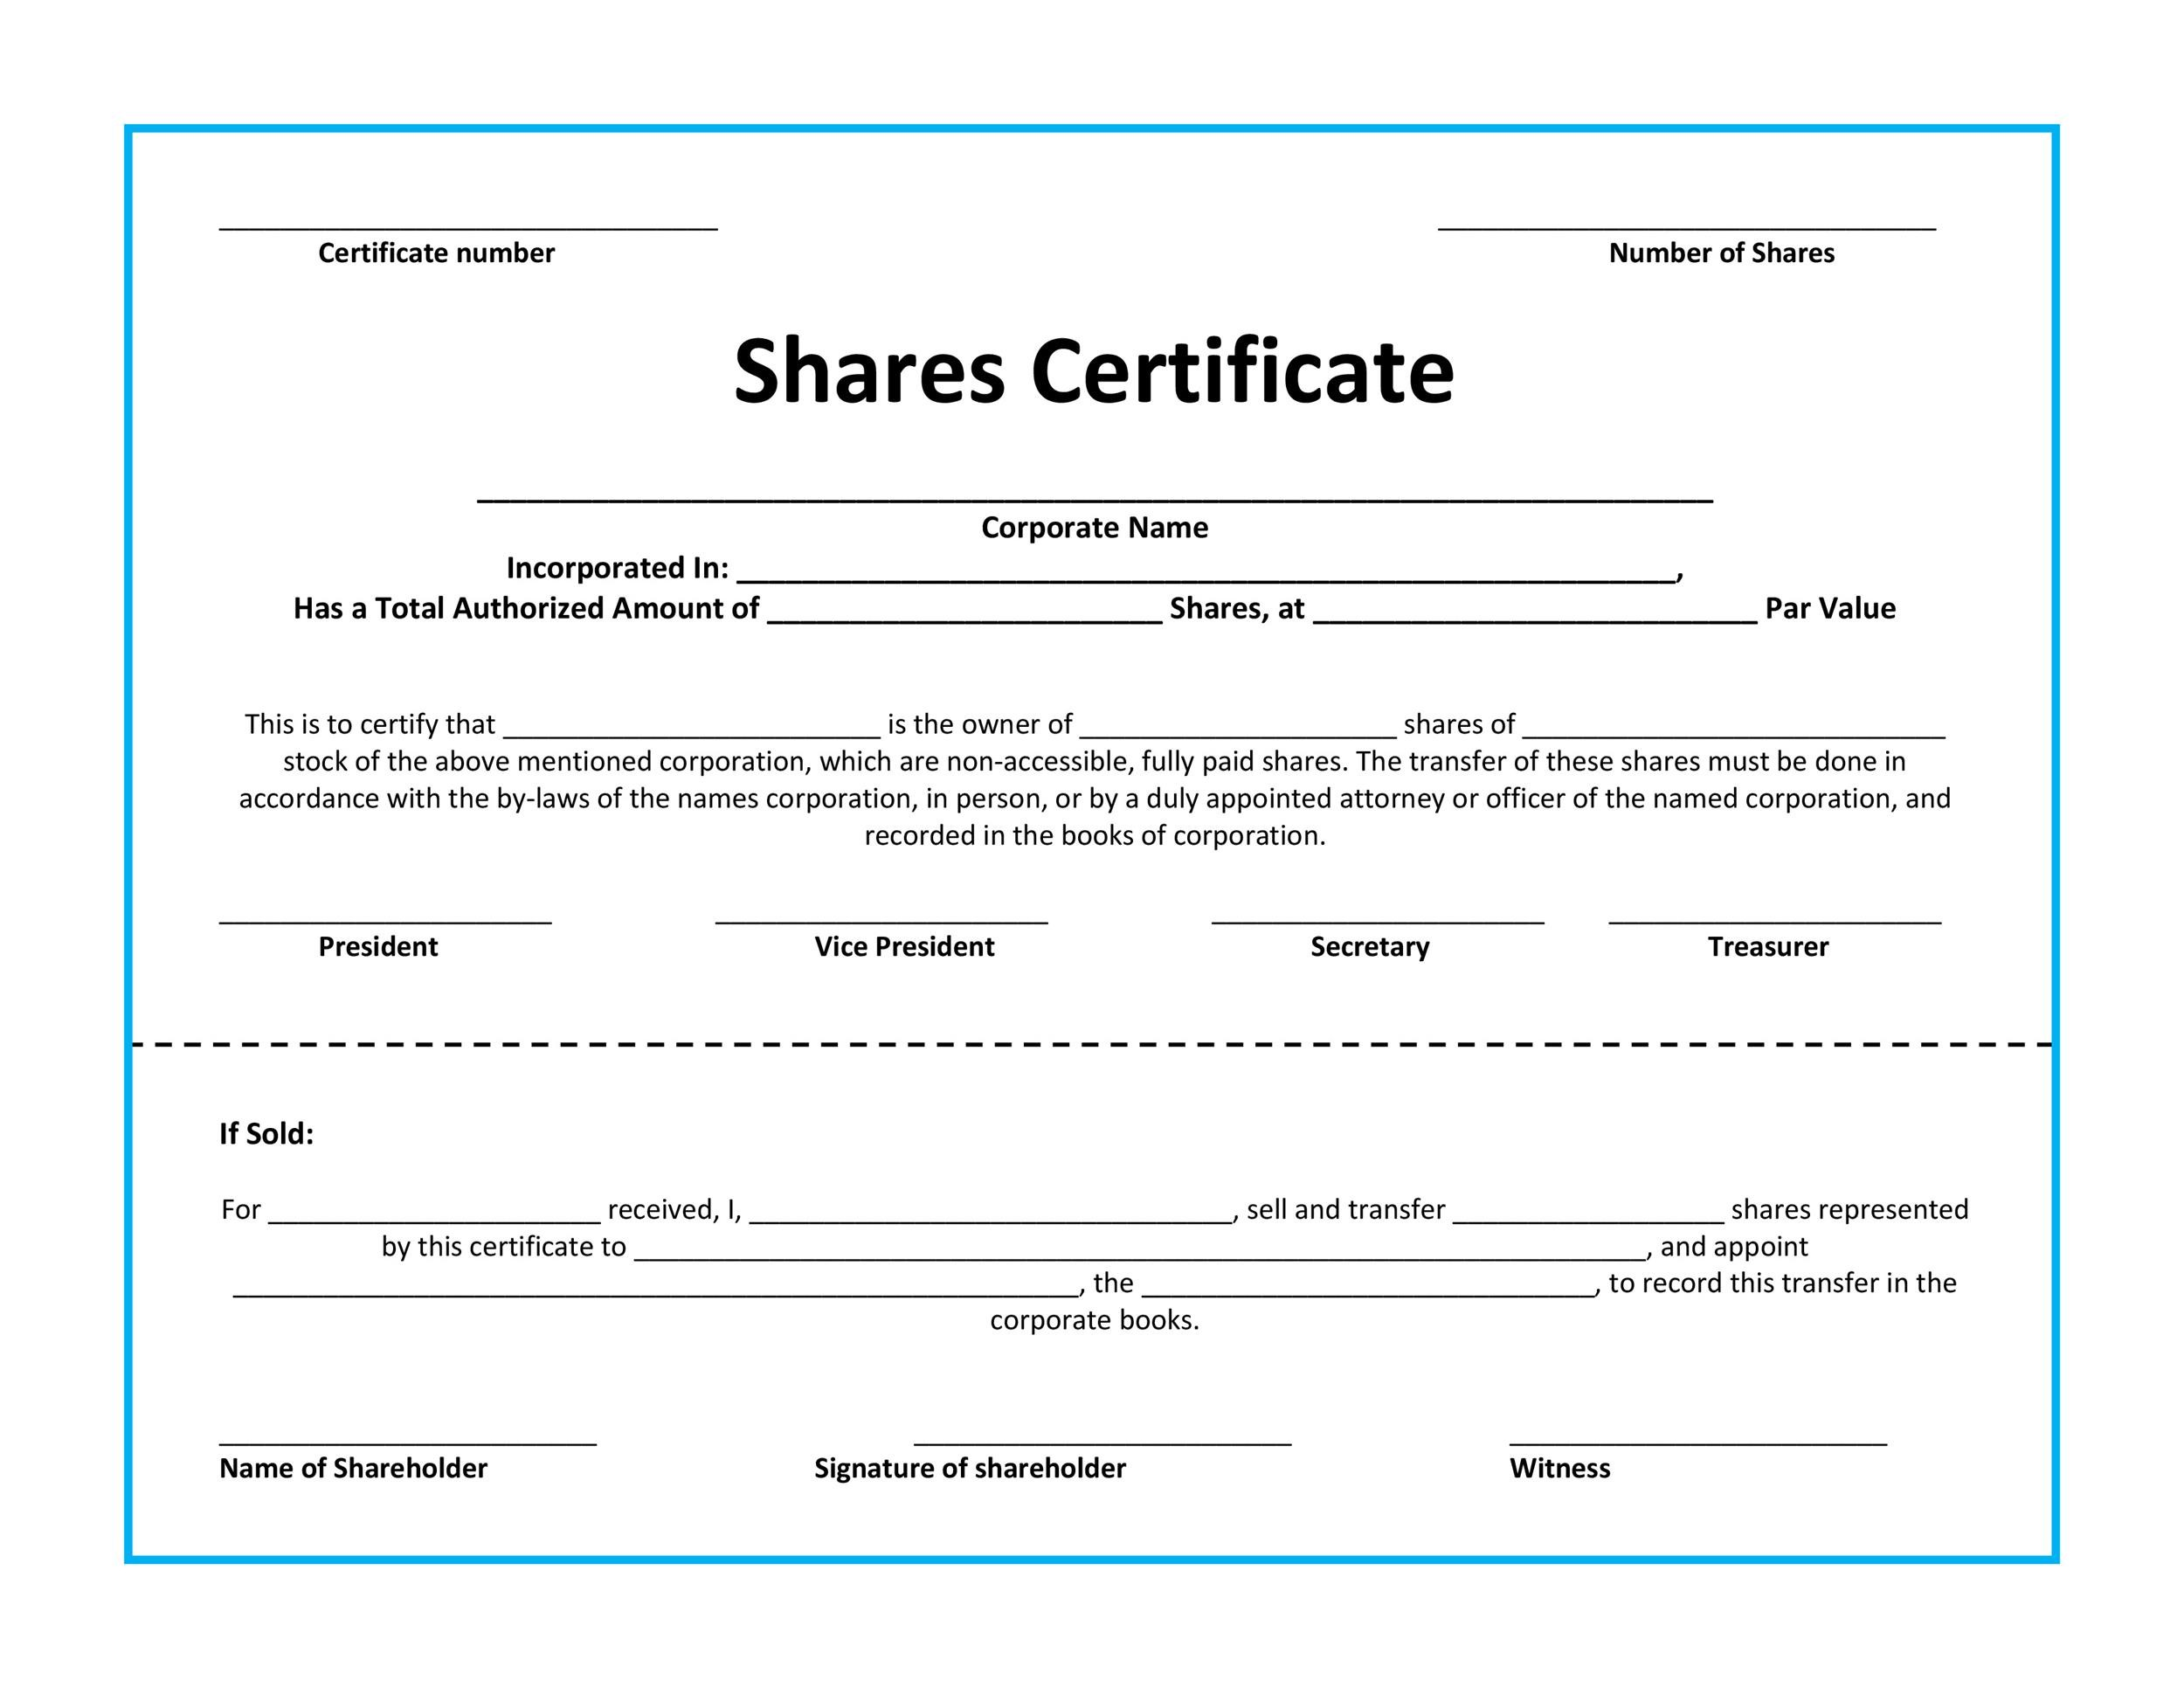 Rainbow factory stock certificate template by mr uhrig on share doc 900636 doc585455 shares certificate template share yadclub Image collections